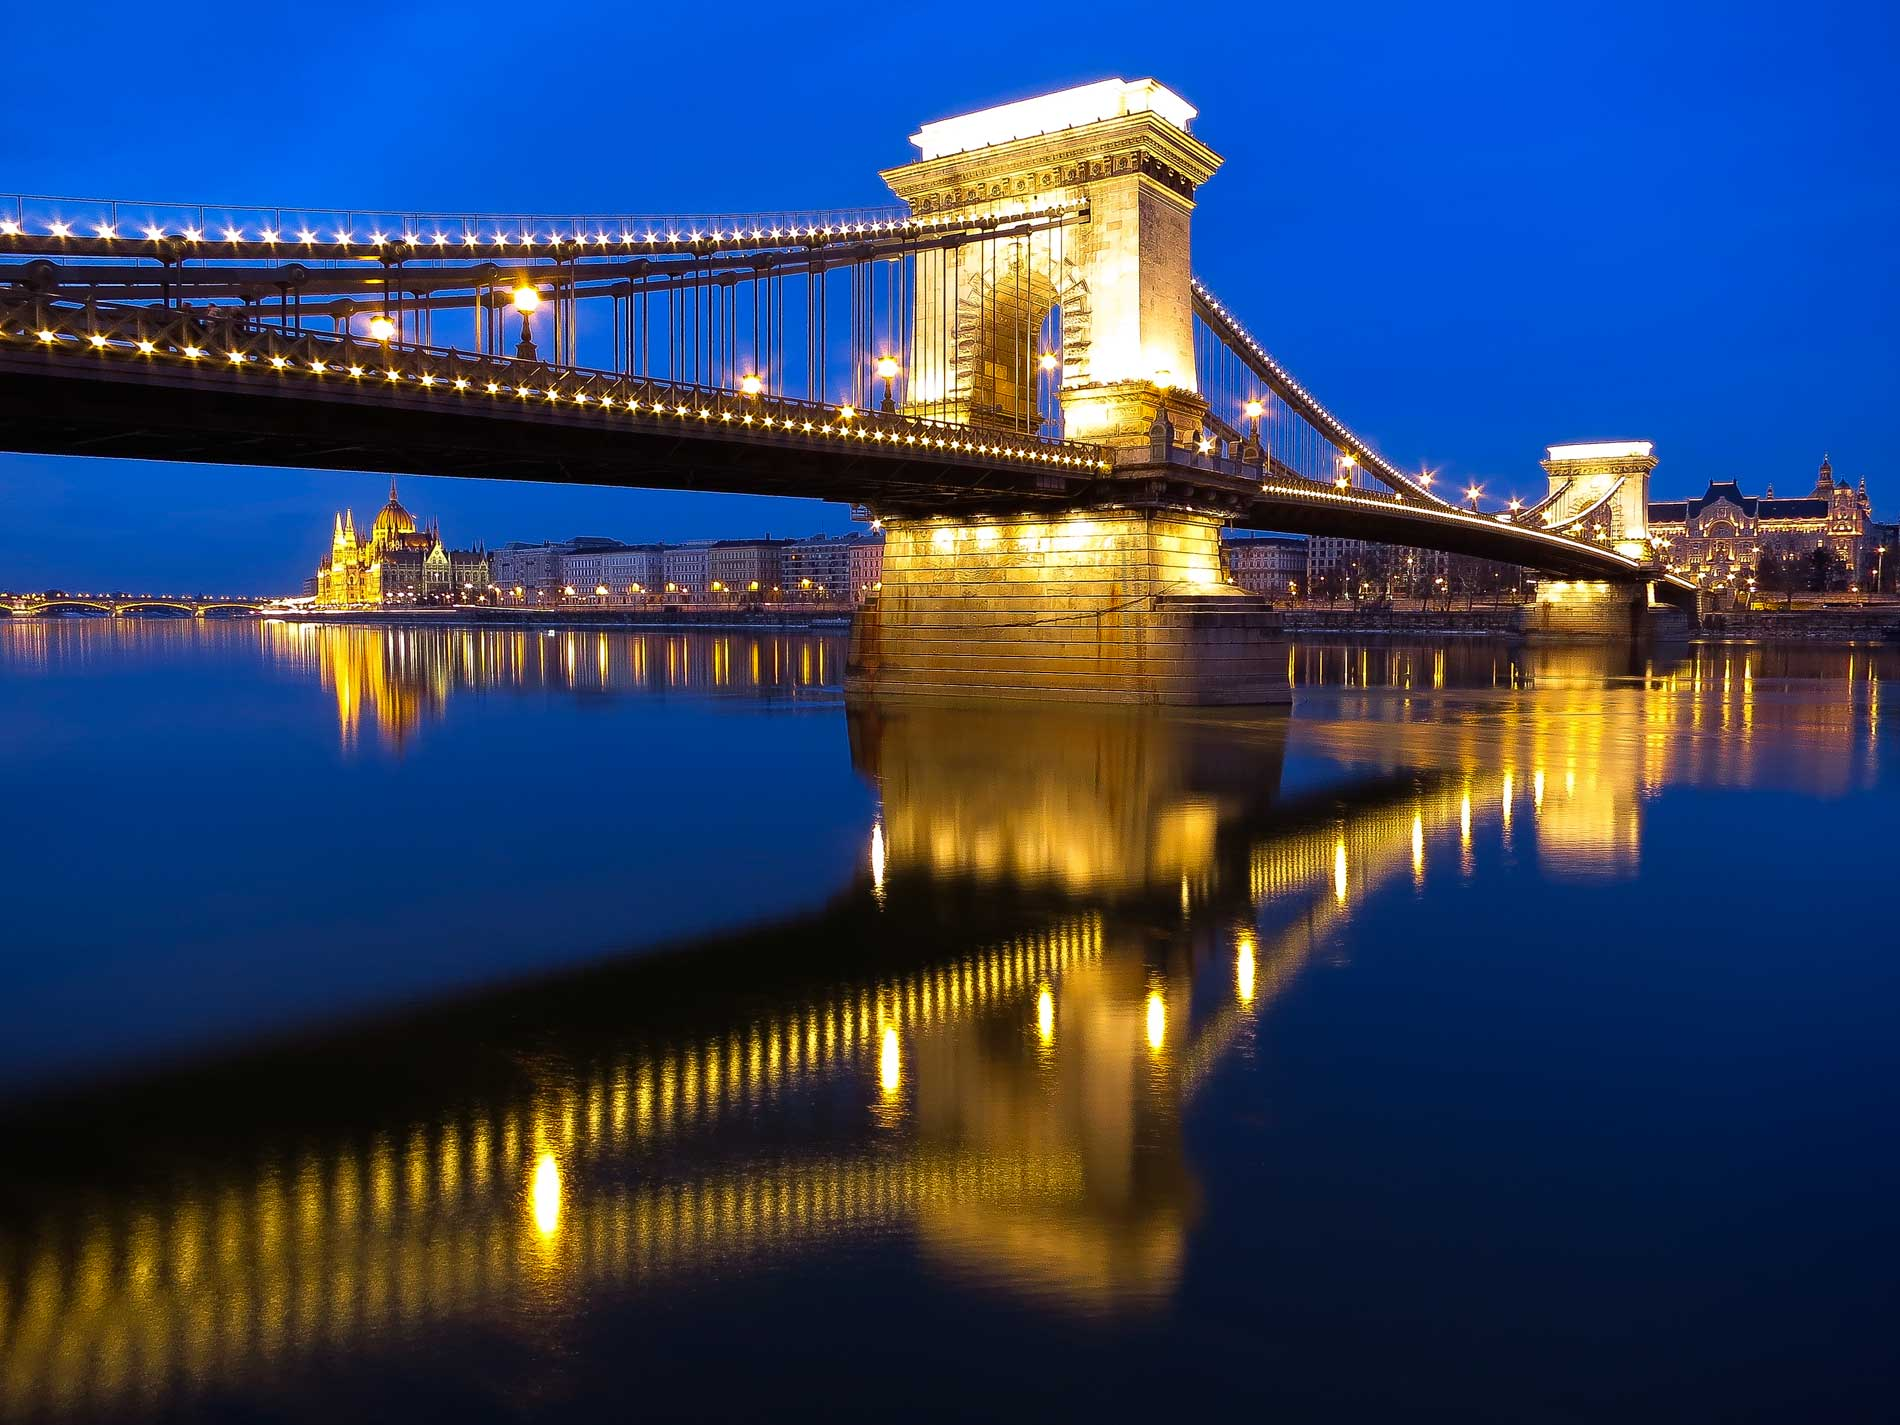 budapest_atthary_photography_bridge_40